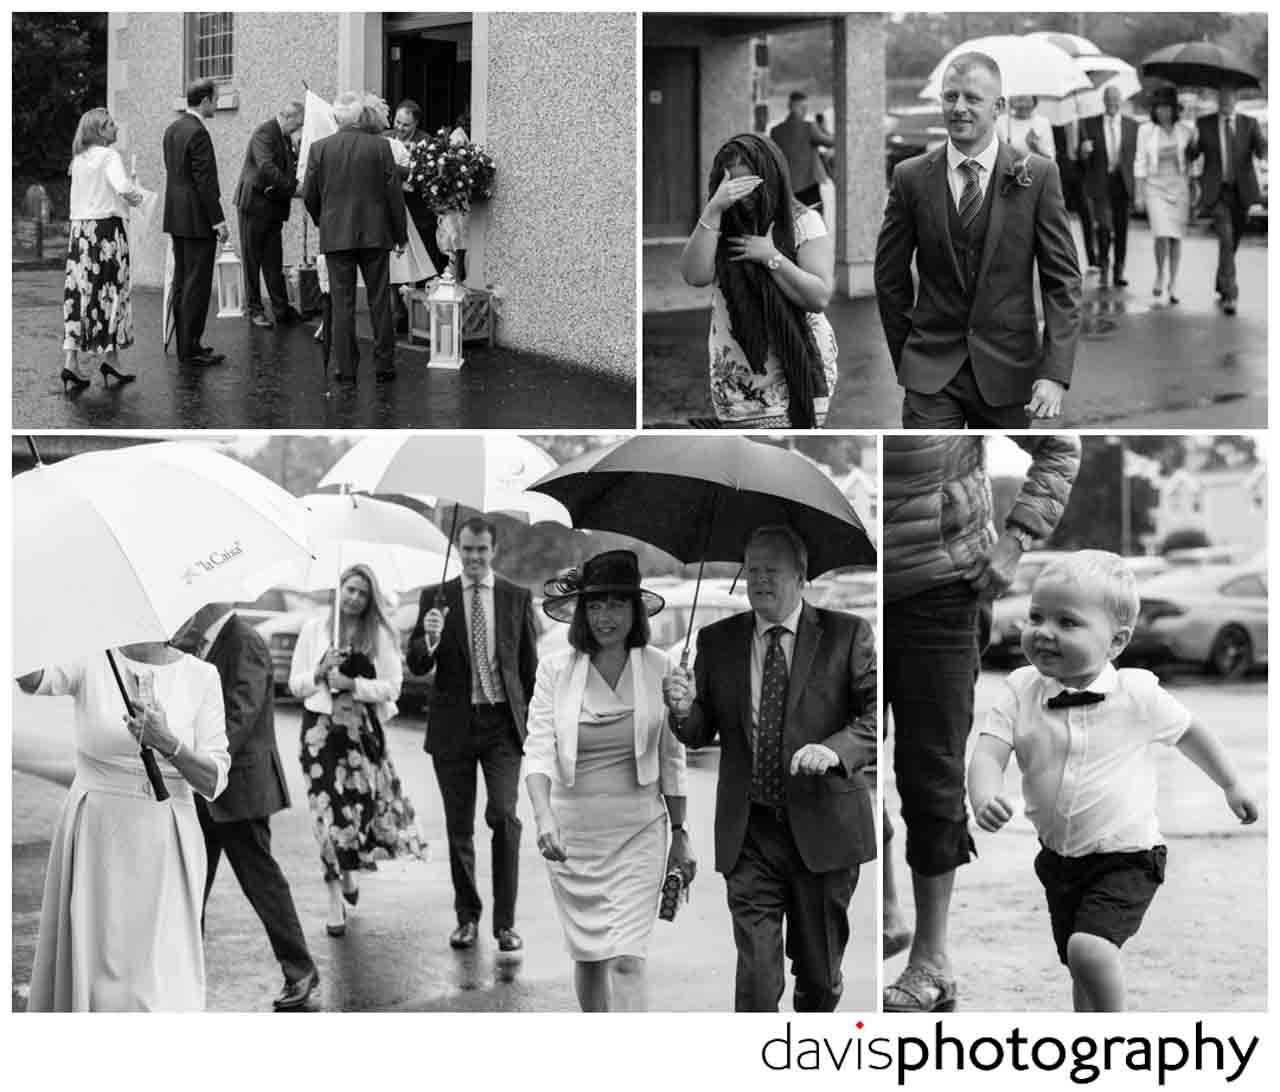 guests arrive with umbrellas